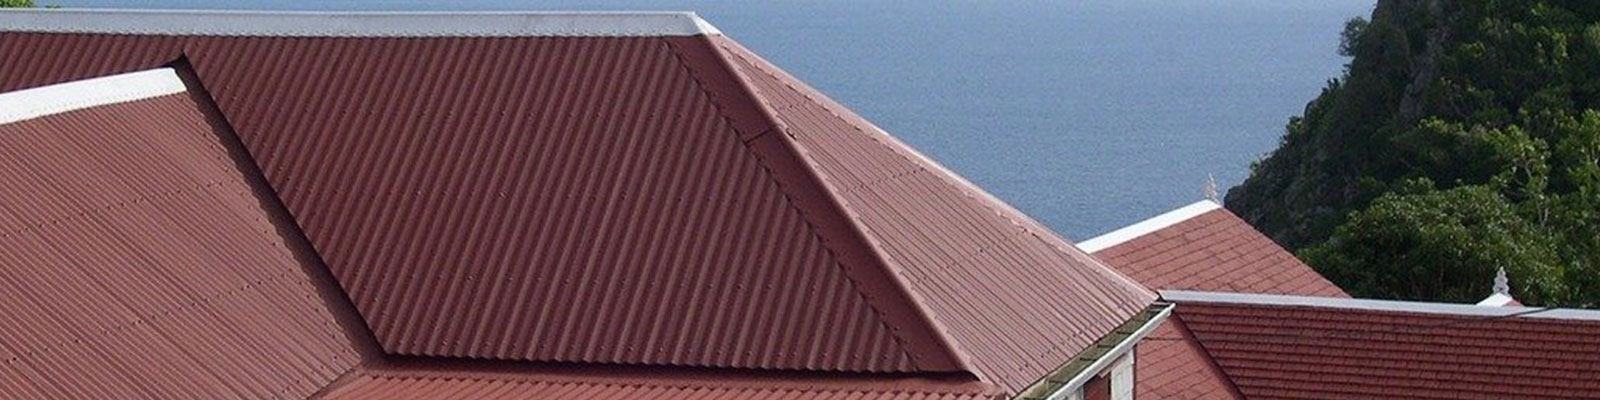 metal-roof-replacement-in-englewood